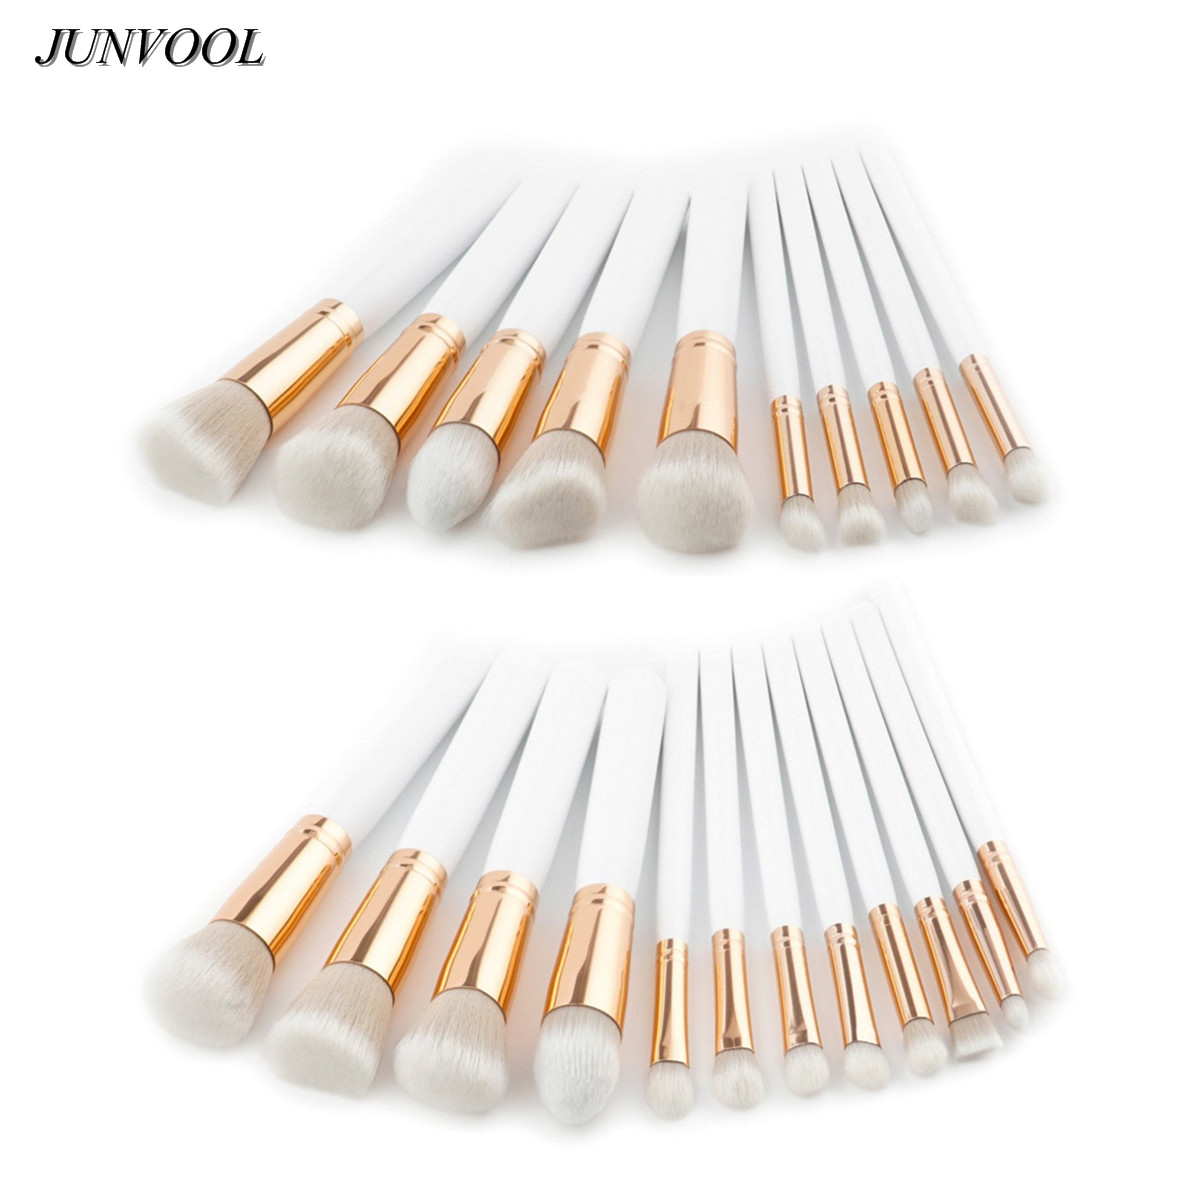 White Gold Makeup Brushes Cosmetic Blending Pencil Professional Soft Cosmetic Eye Eyebrow Shadow Make Up Brush Set Tool Kit g073 professional makeup brush goat hair ebony handle make up eye shadow smudge brushes cosmetic tool eye shadow blending brush